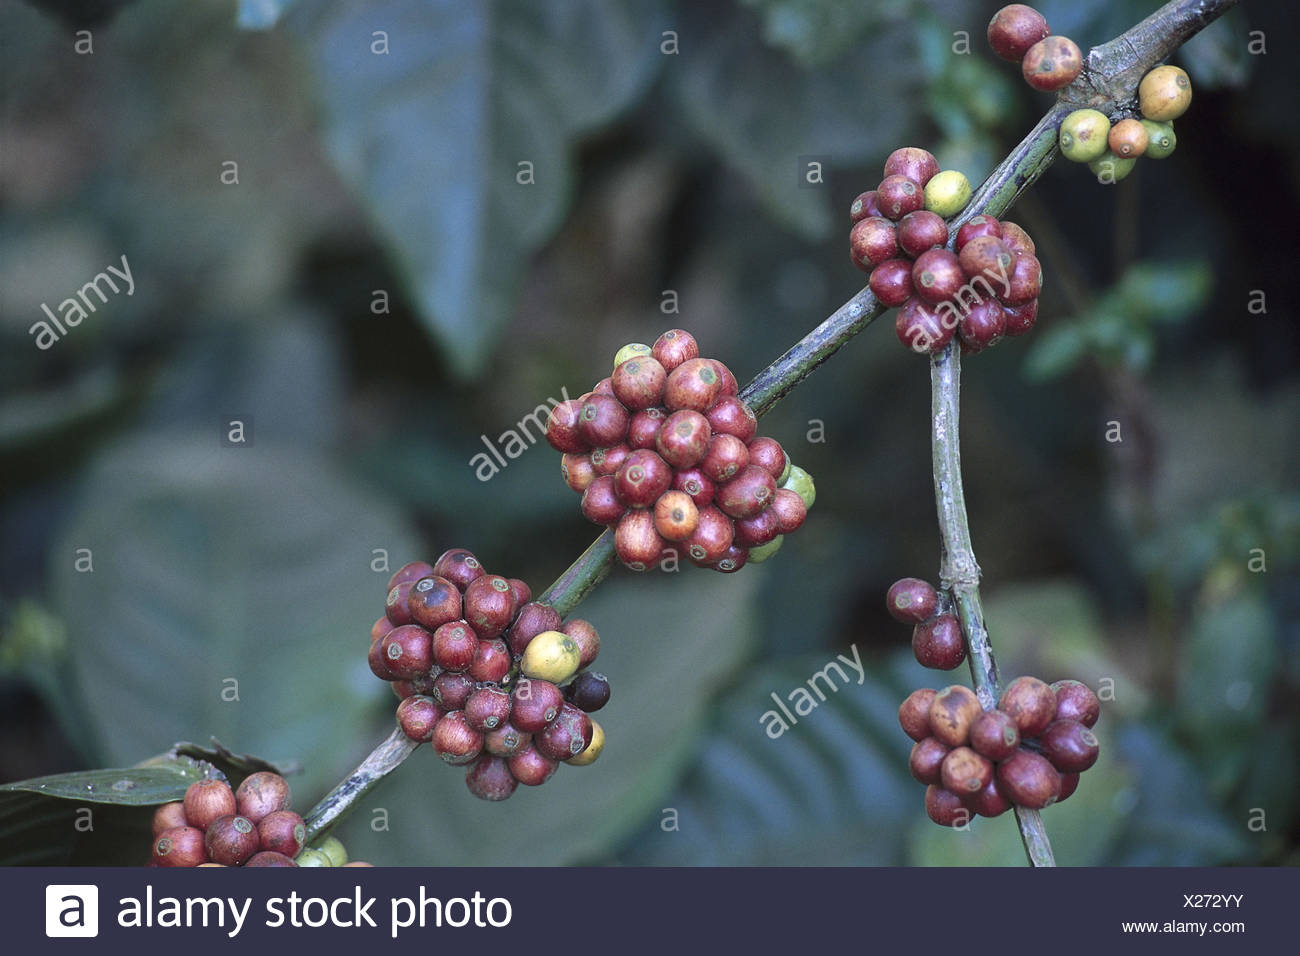 Coffee tree, branch, beans, detail Asia, South Asia, Hindi Bharat, India, Südindien, Kerala, Periyar, plant, coffee plant, botany, vegetation, Coffea, coffee, redness plants, cultivated plant, economy, annex, fruits - Stock Image